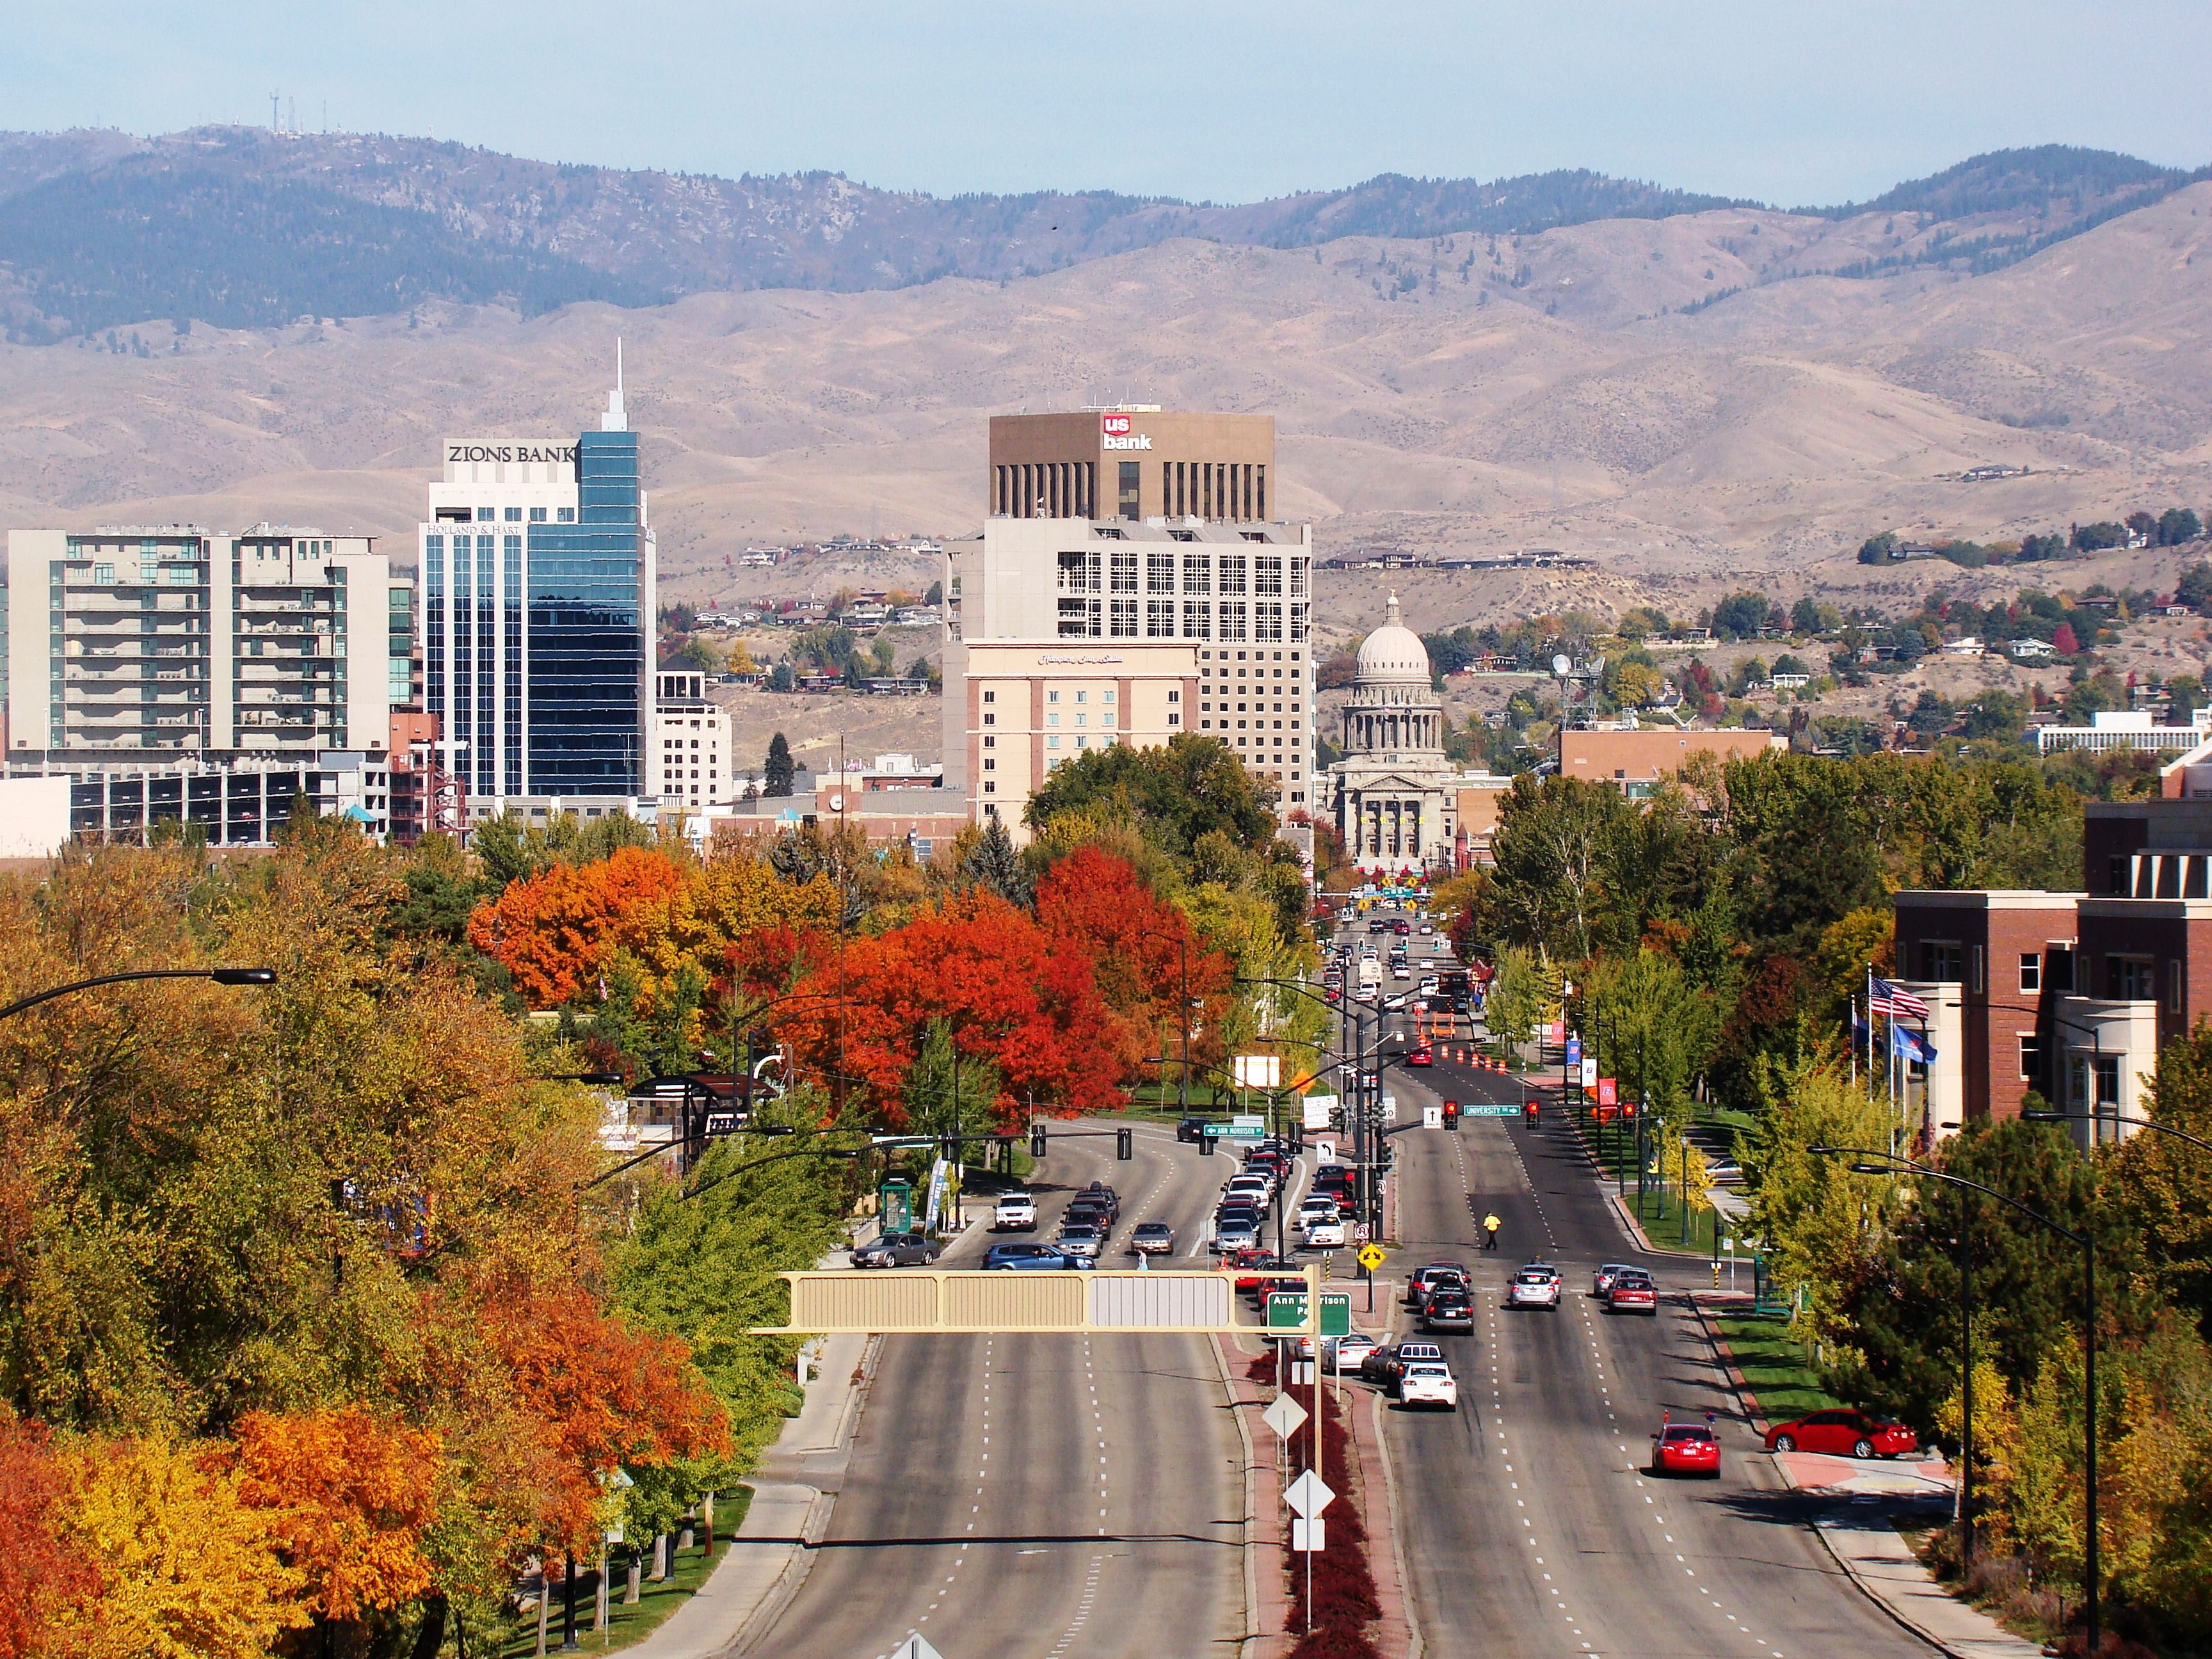 Capitol Of Boise, Idaho, As Seen From The Historic Boise